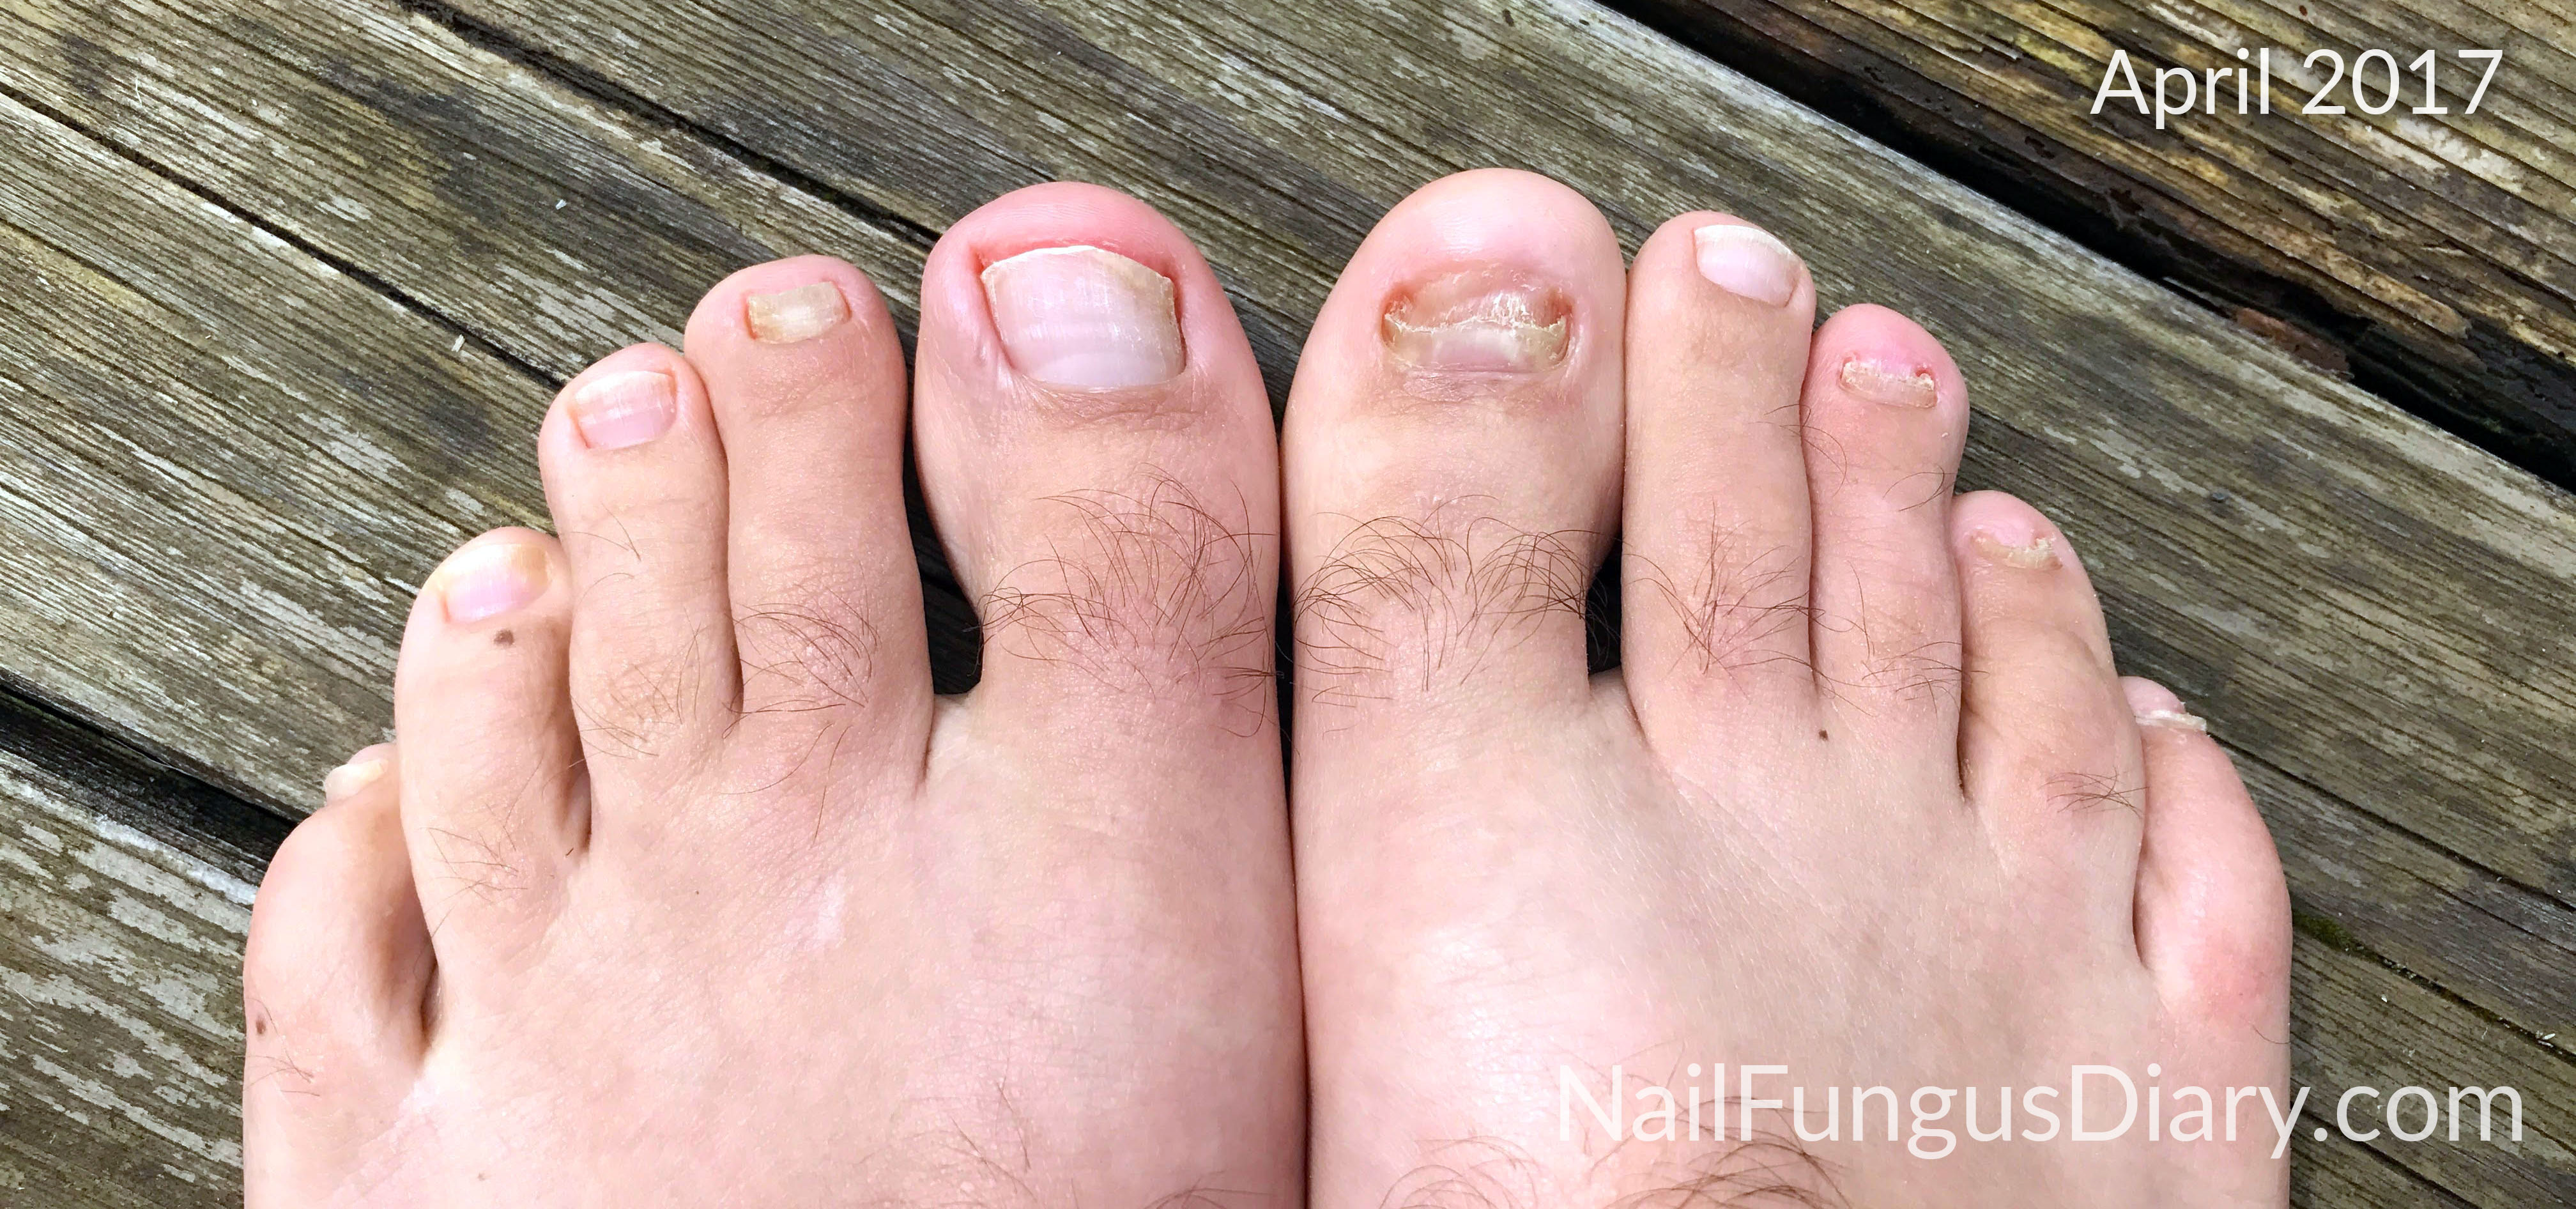 Nail Fungus Update, April 2017 - Nail Fungus Diary